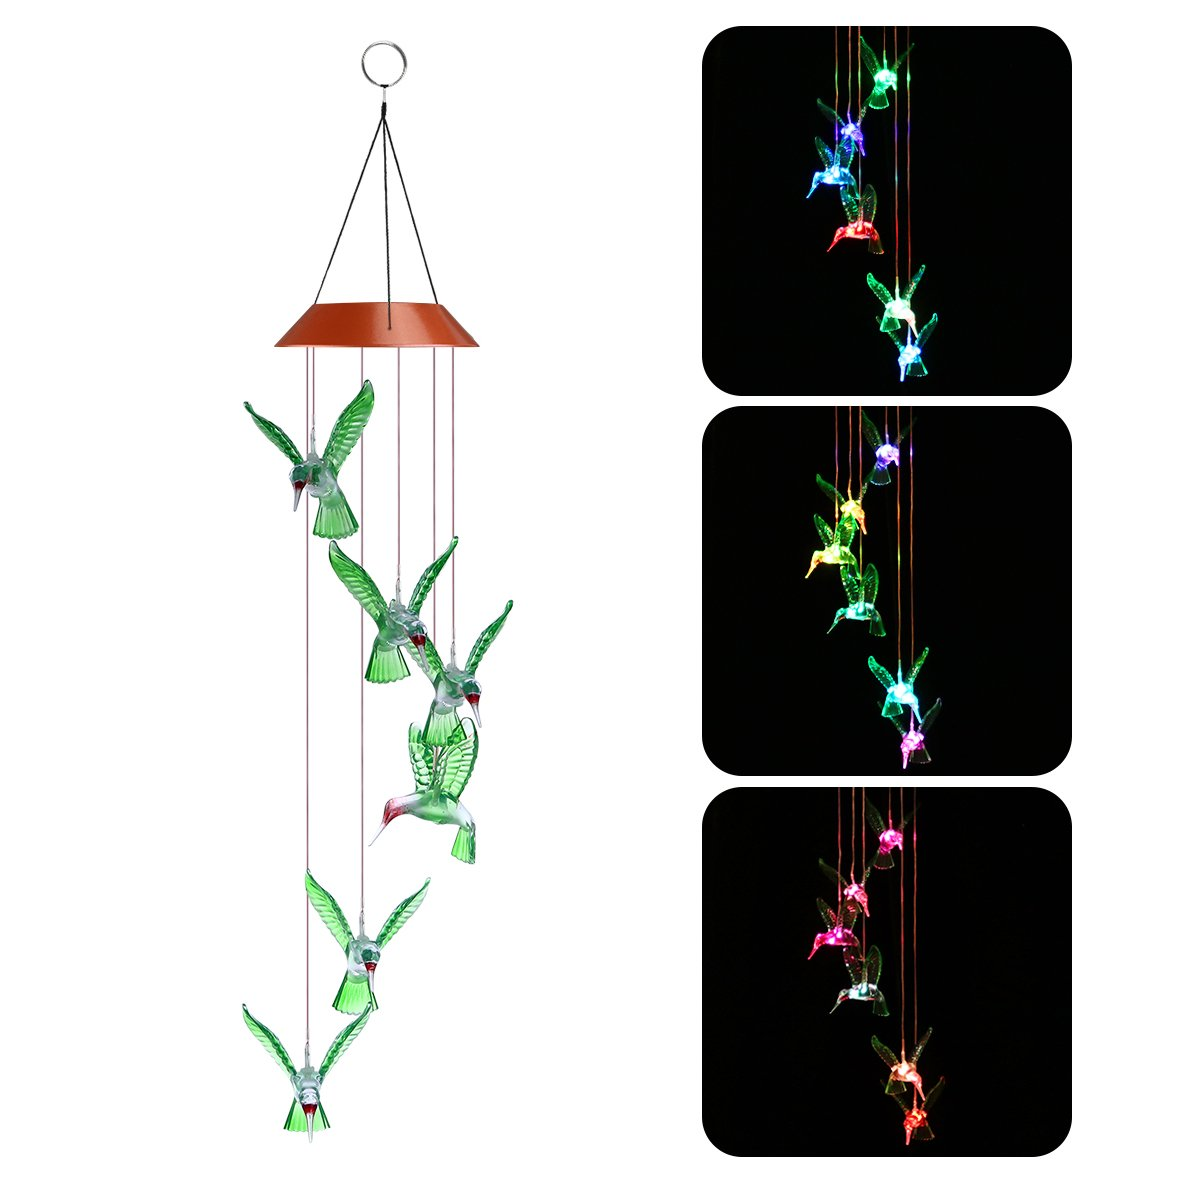 YUNLIGHTS LED Solar Wind Chimes, Changing Color Hummingbird Lamp Automatic Sensor Garden Spinner Outdoor Lights for Home Party Decorations by YUNLIGHTS